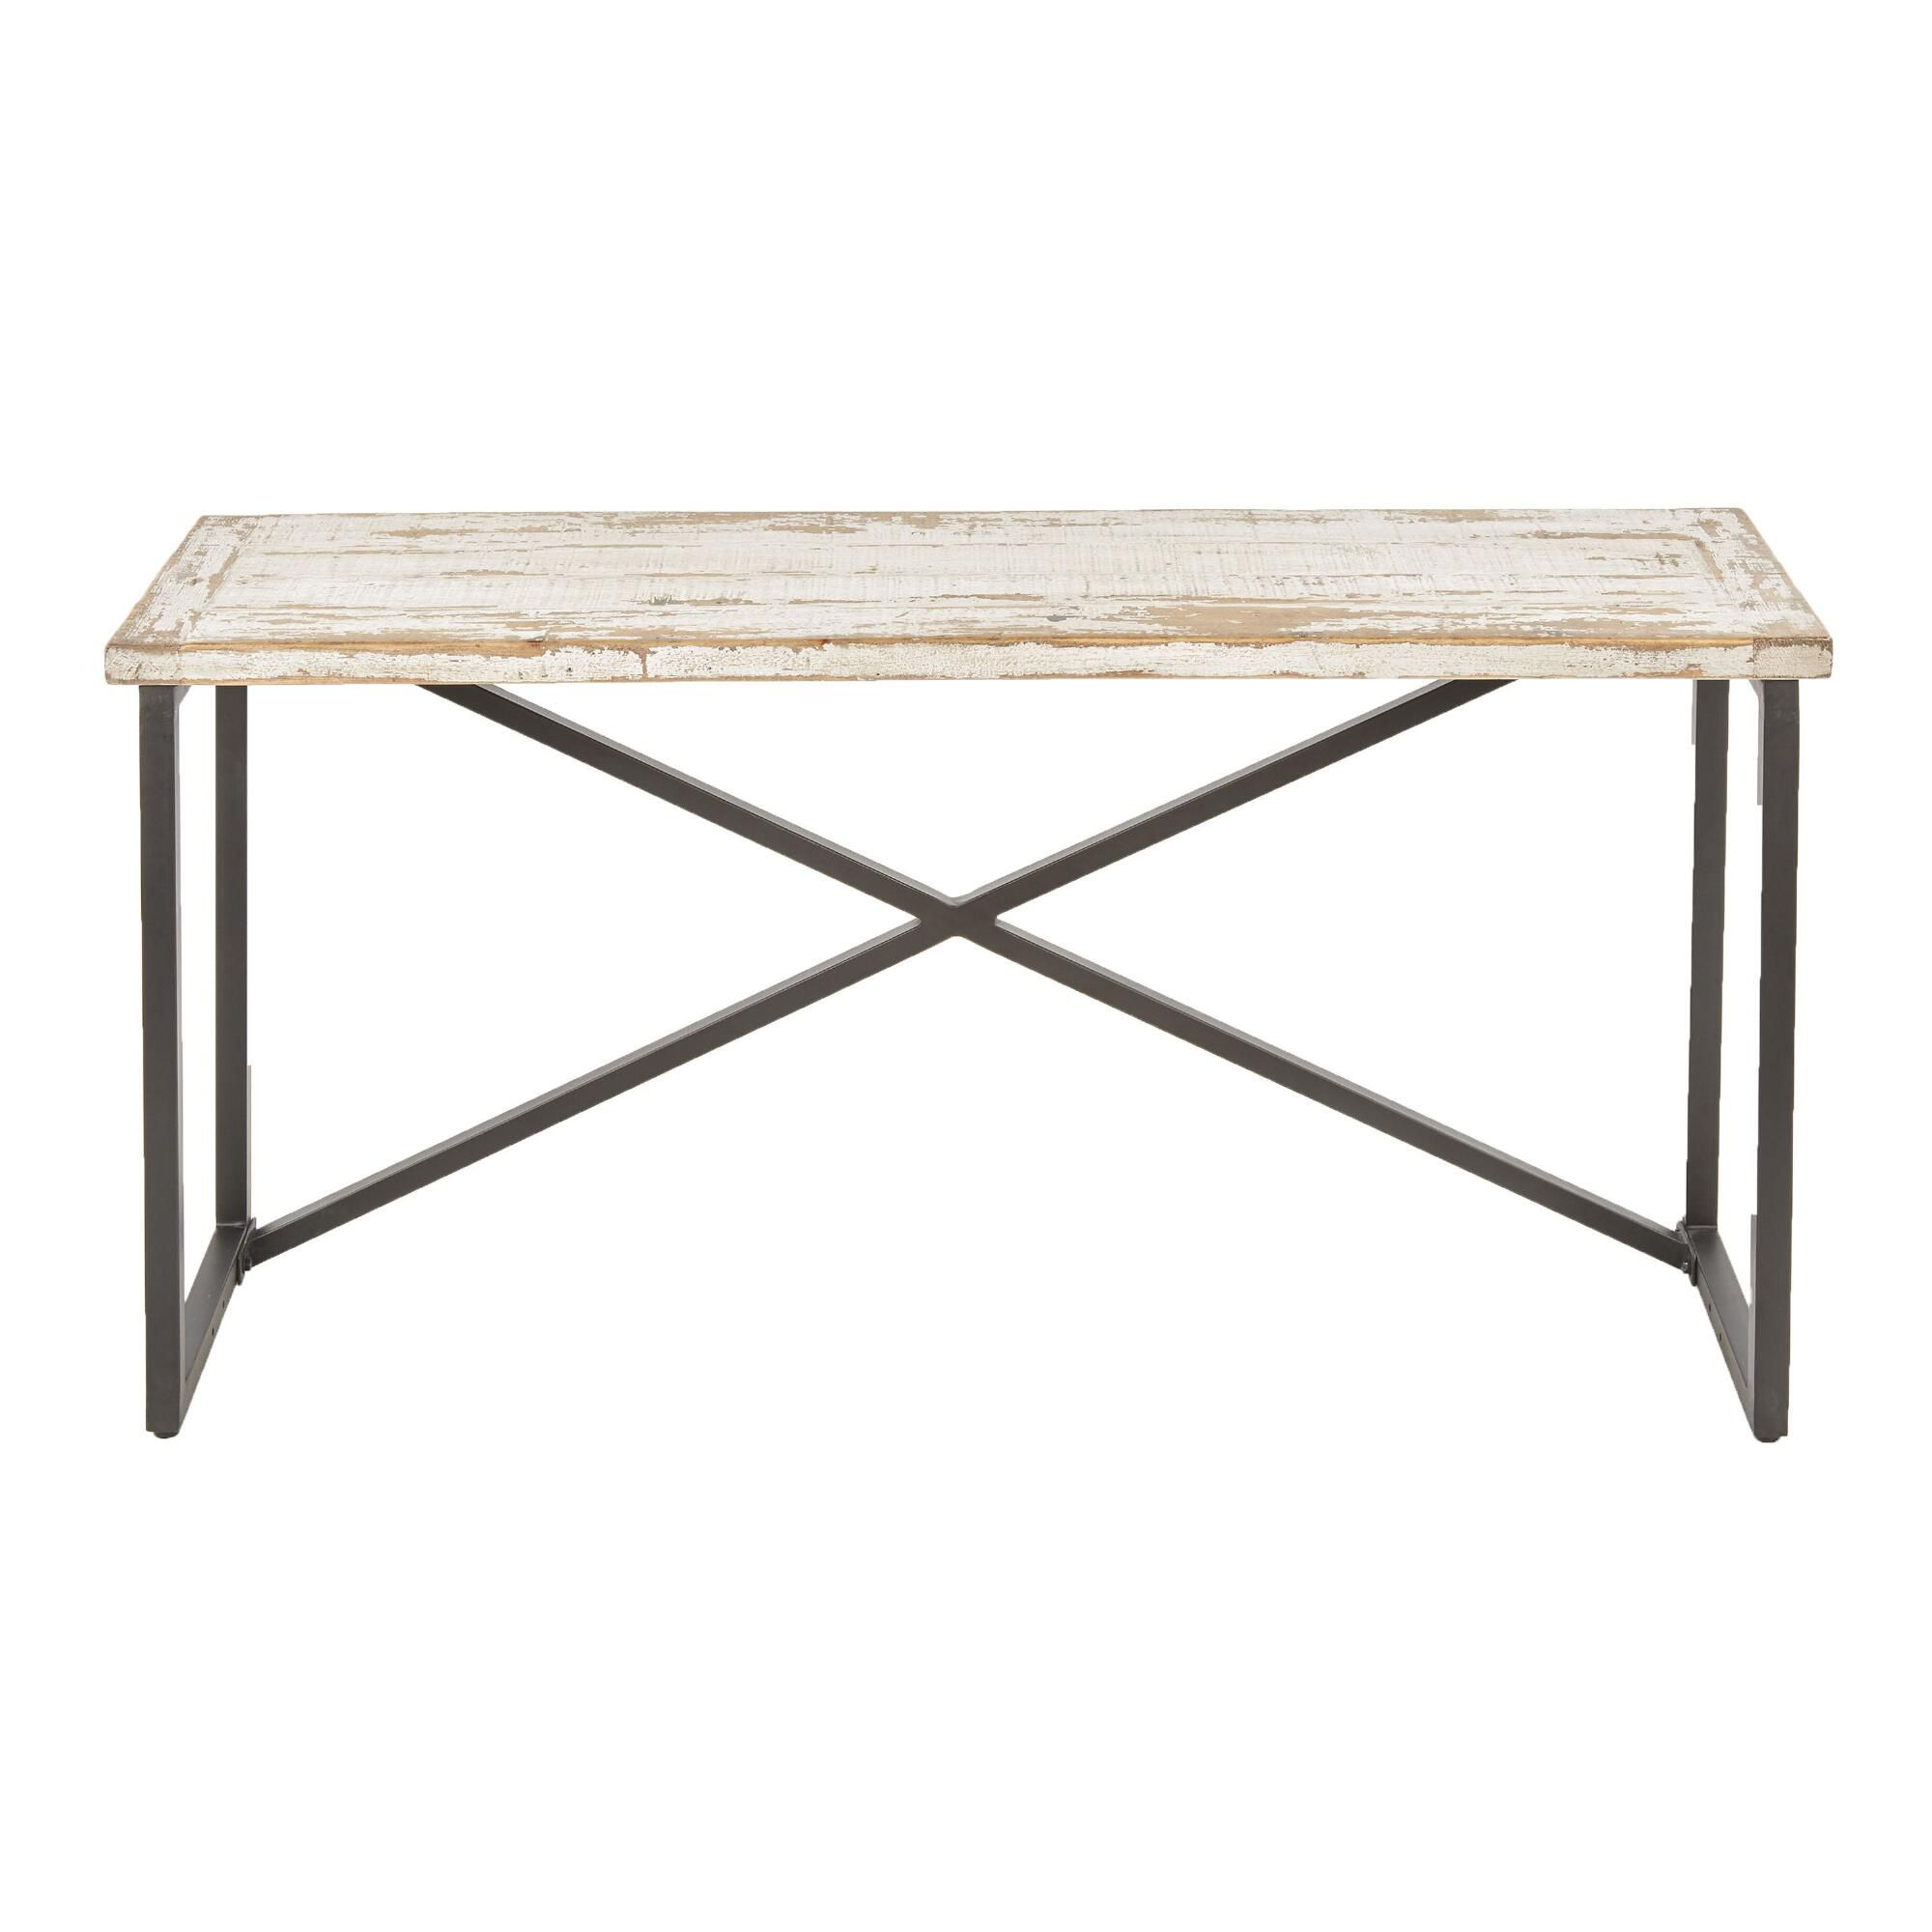 A whitewashed pine console table with a black metal base.